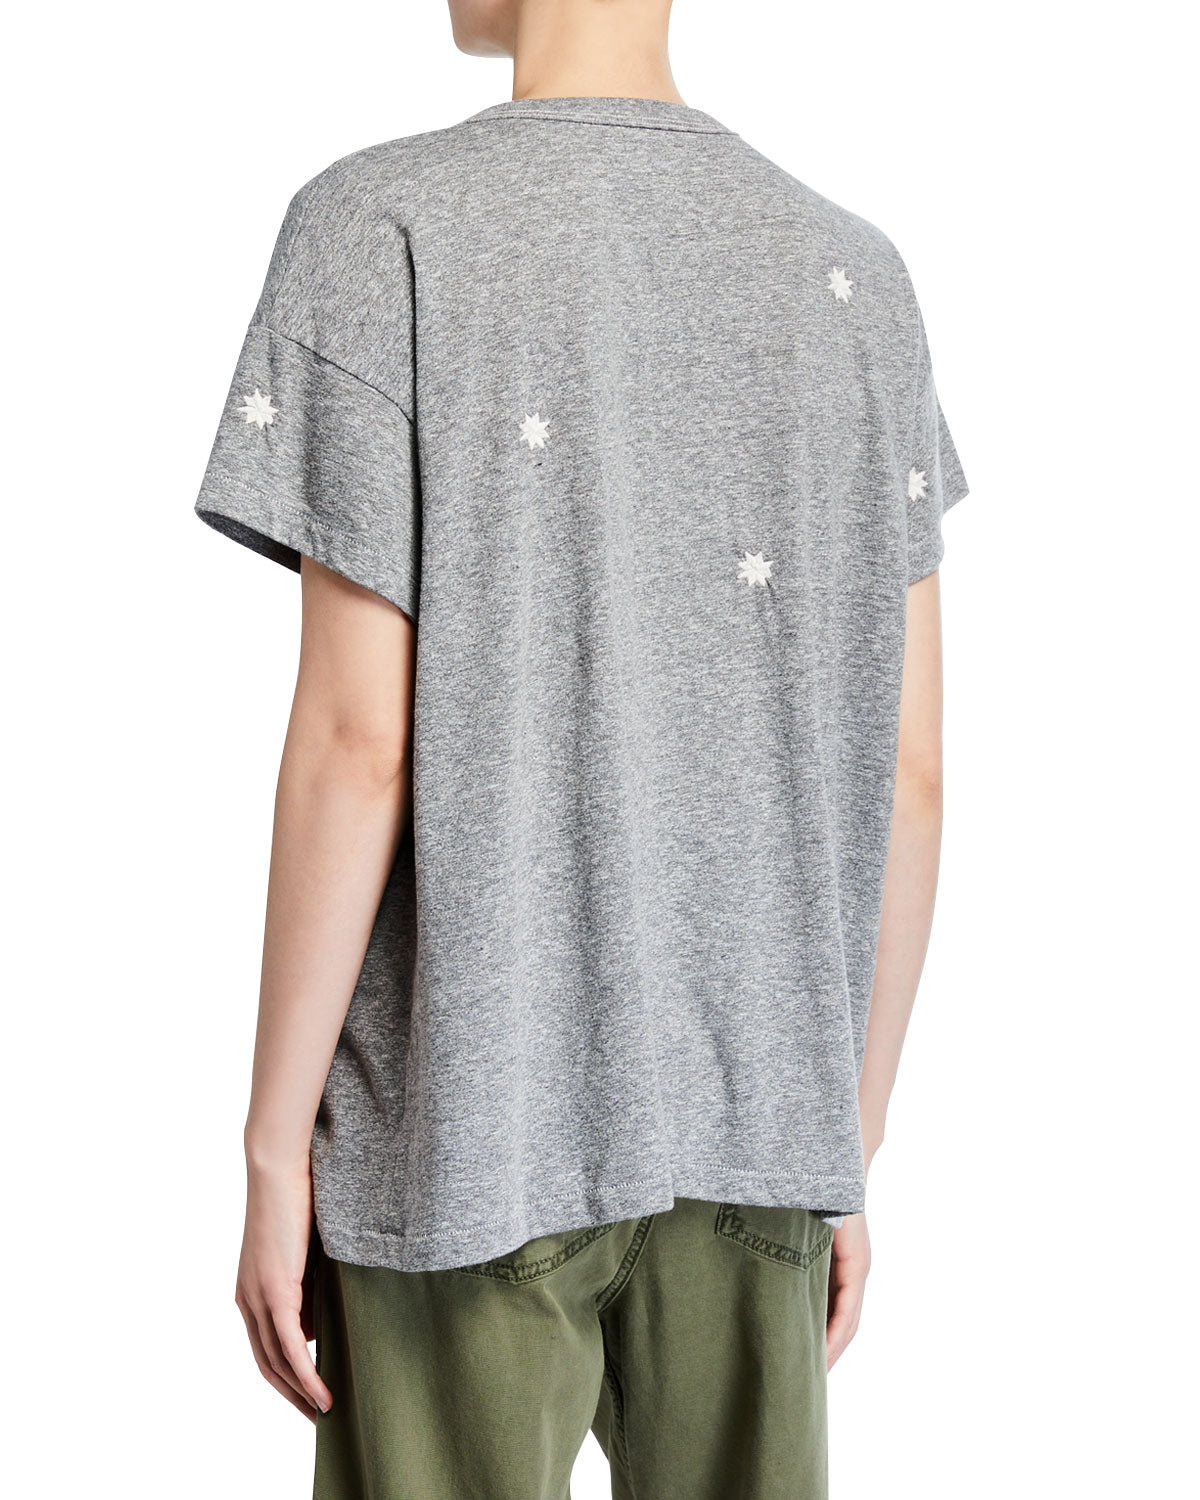 The Boxy Crew with Badge Embroidery Heather Grey